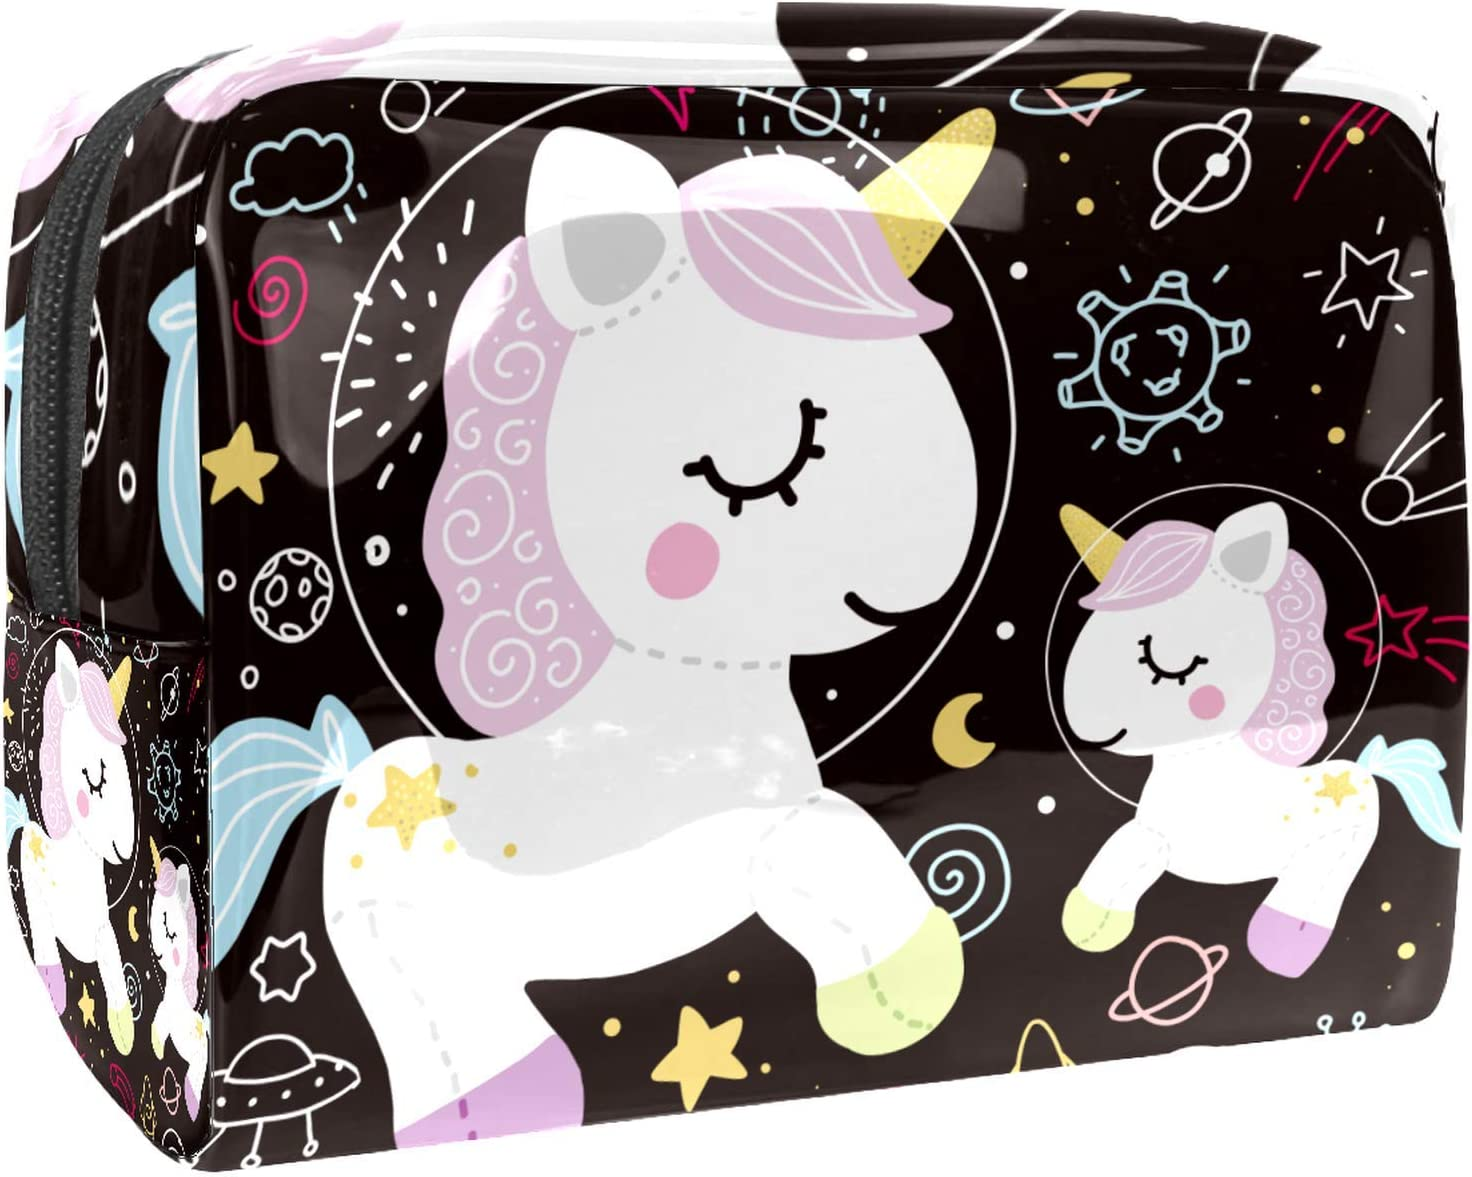 Sale item Cosmetic Bag for Women Roomy Makeup Space Pla Magic shopping Unicorn Bags